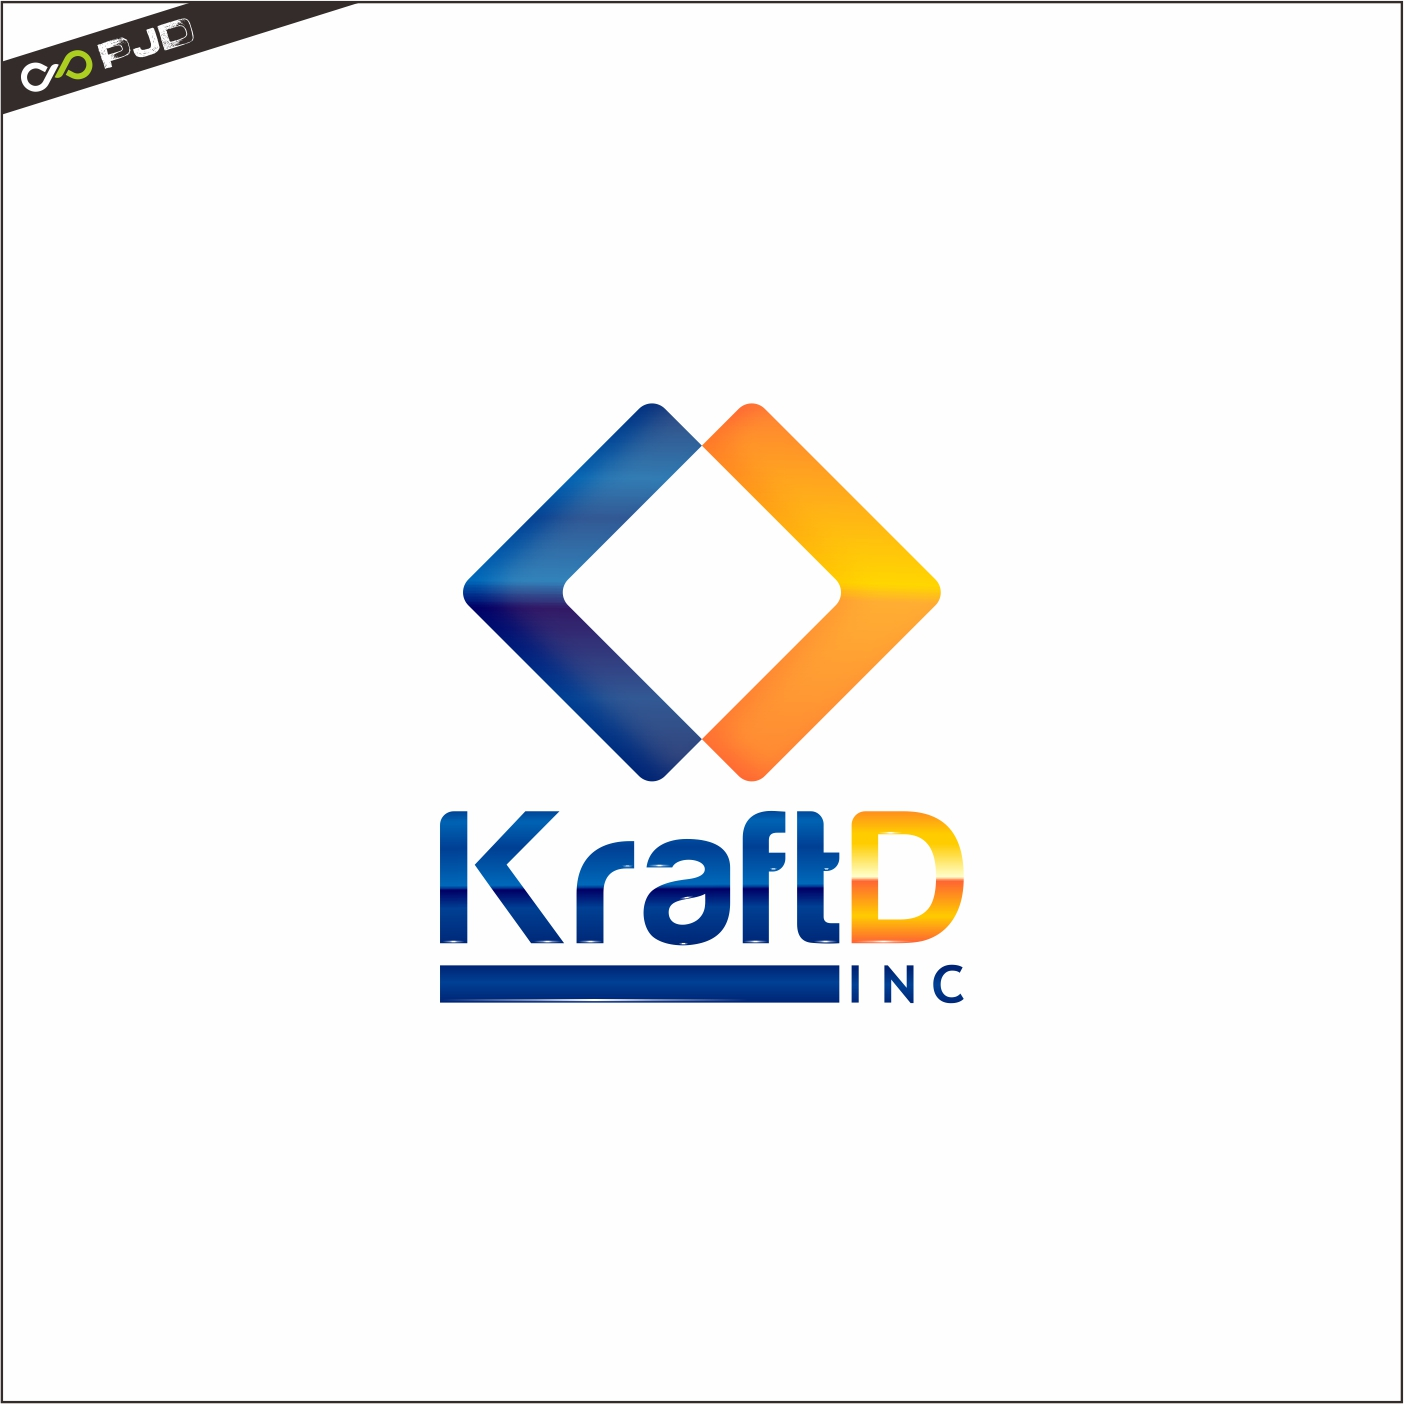 Logo Design by PJD - Entry No. 475 in the Logo Design Contest Unique Logo Design Wanted for Kraft D Inc.